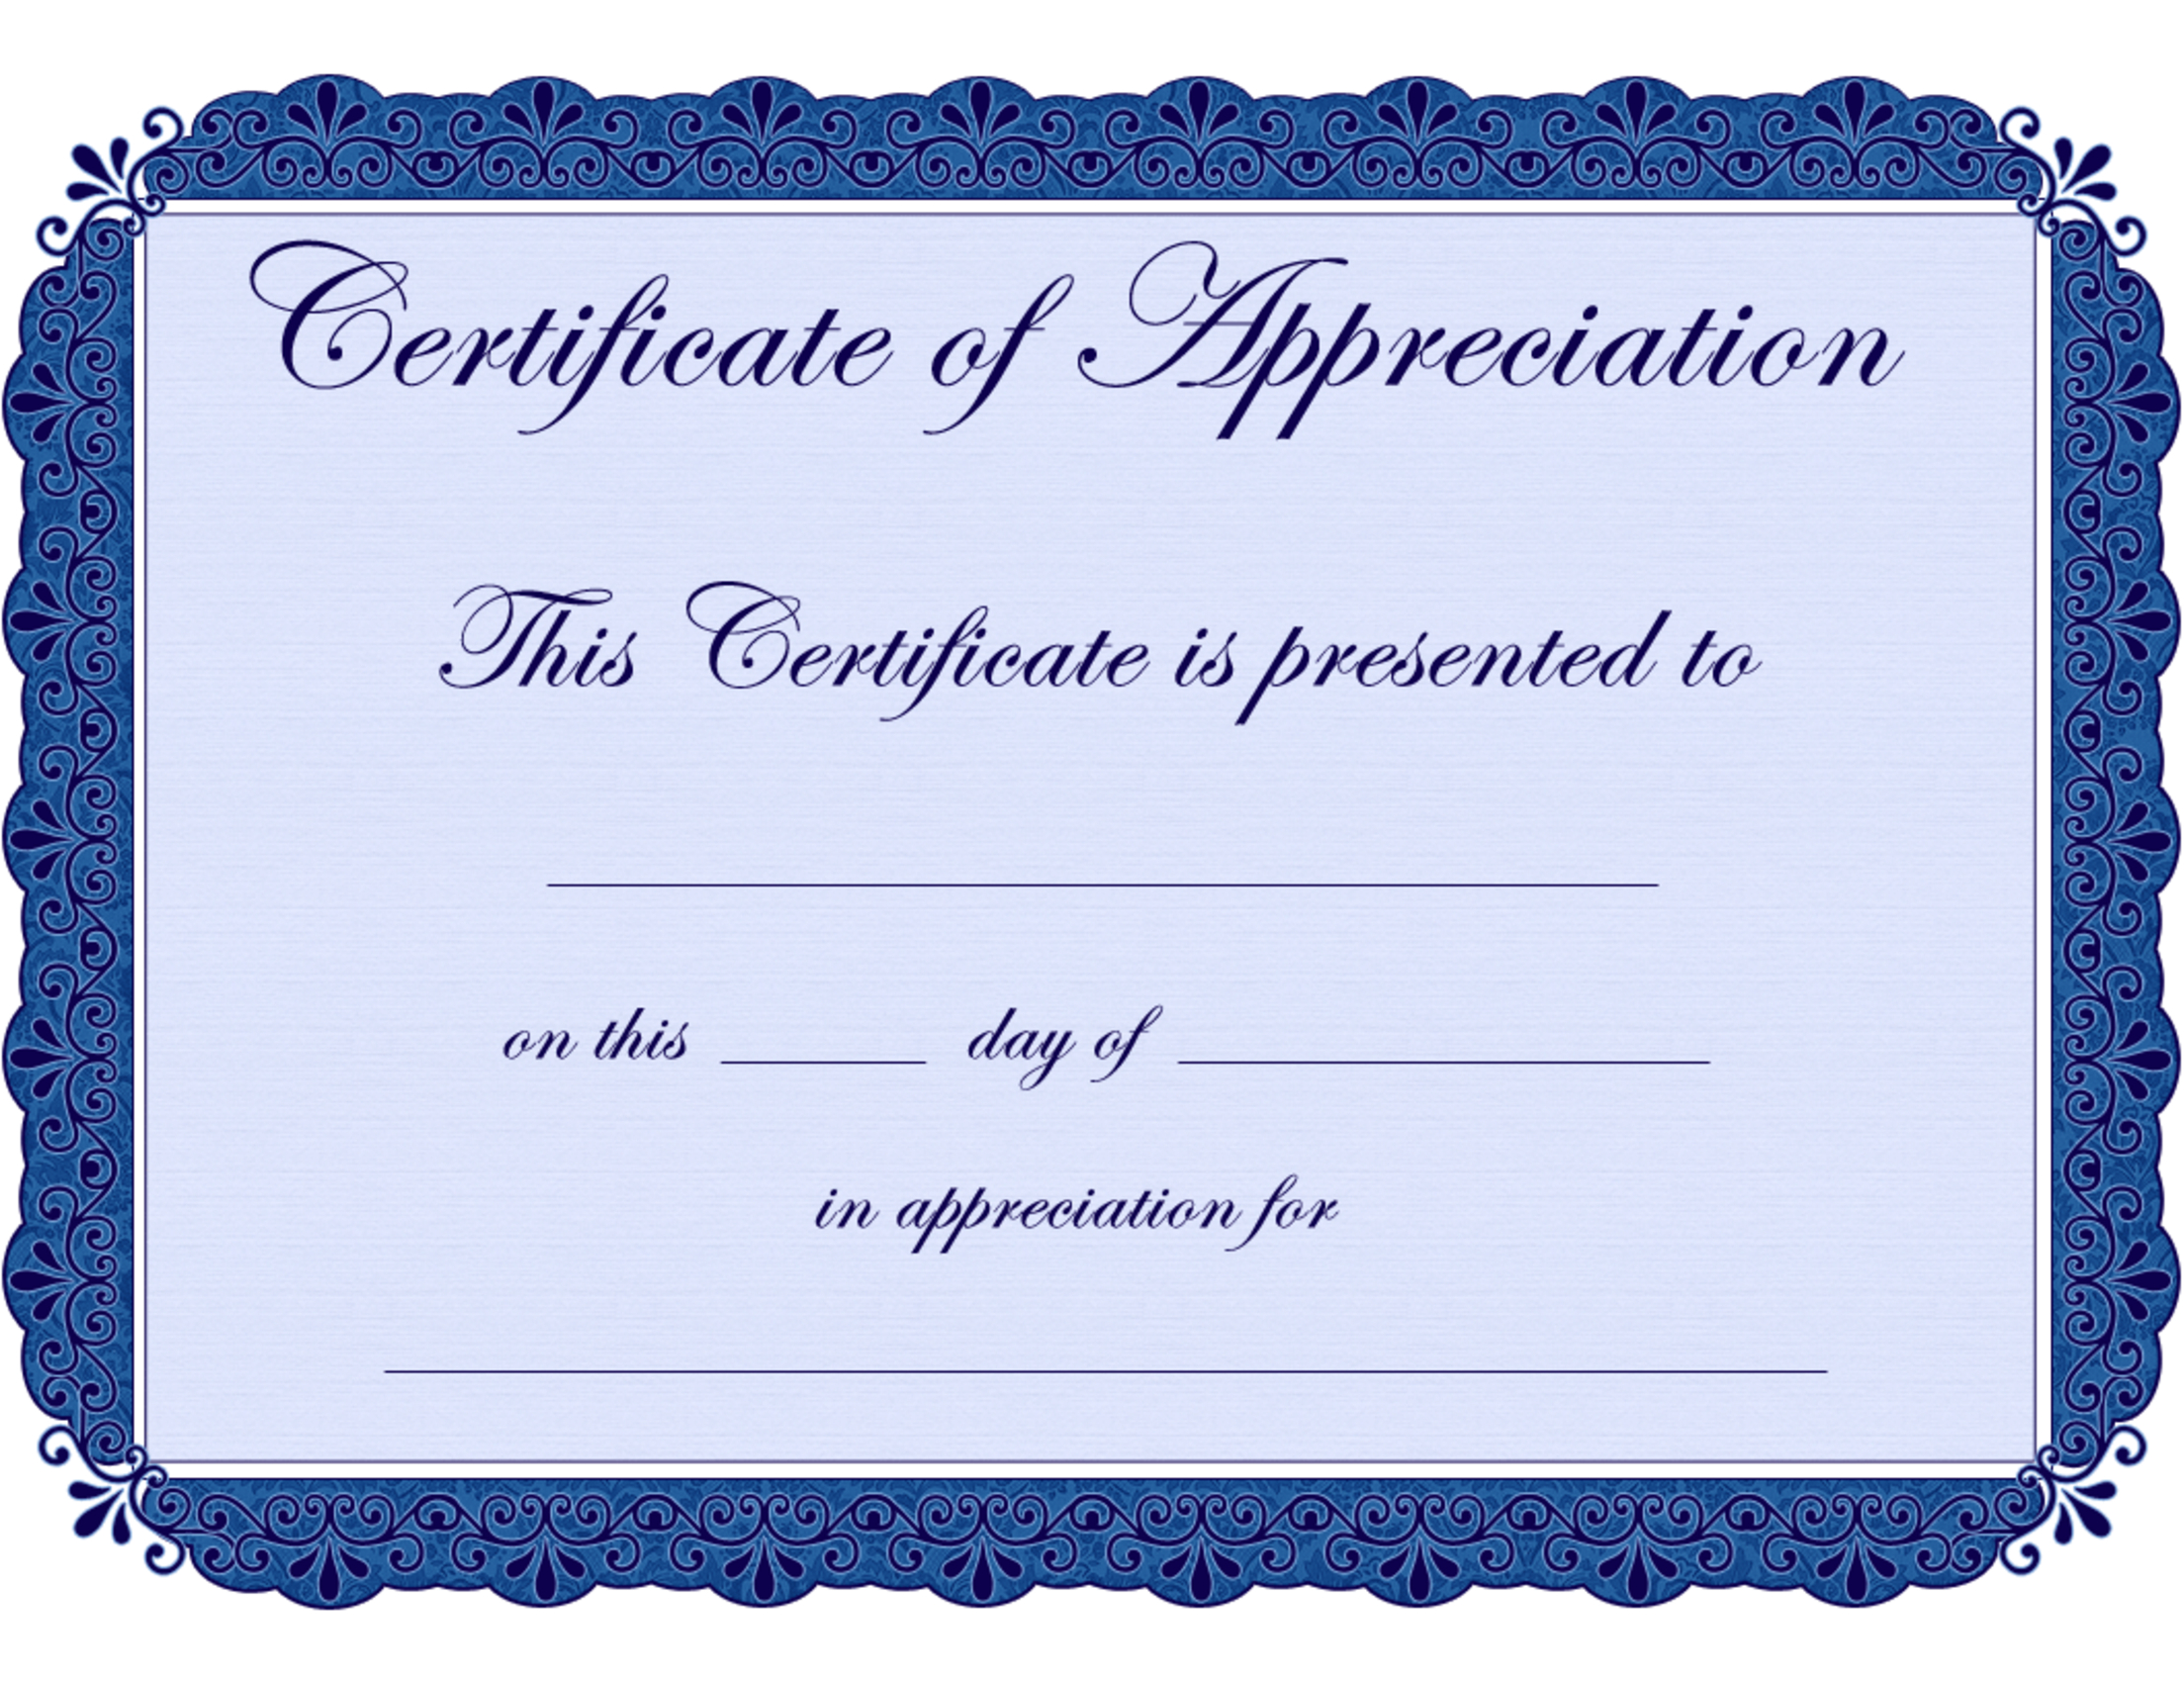 Free Printable Certificates Certificate Of Appreciation Certificate - Free Printable Blank Certificates Of Achievement